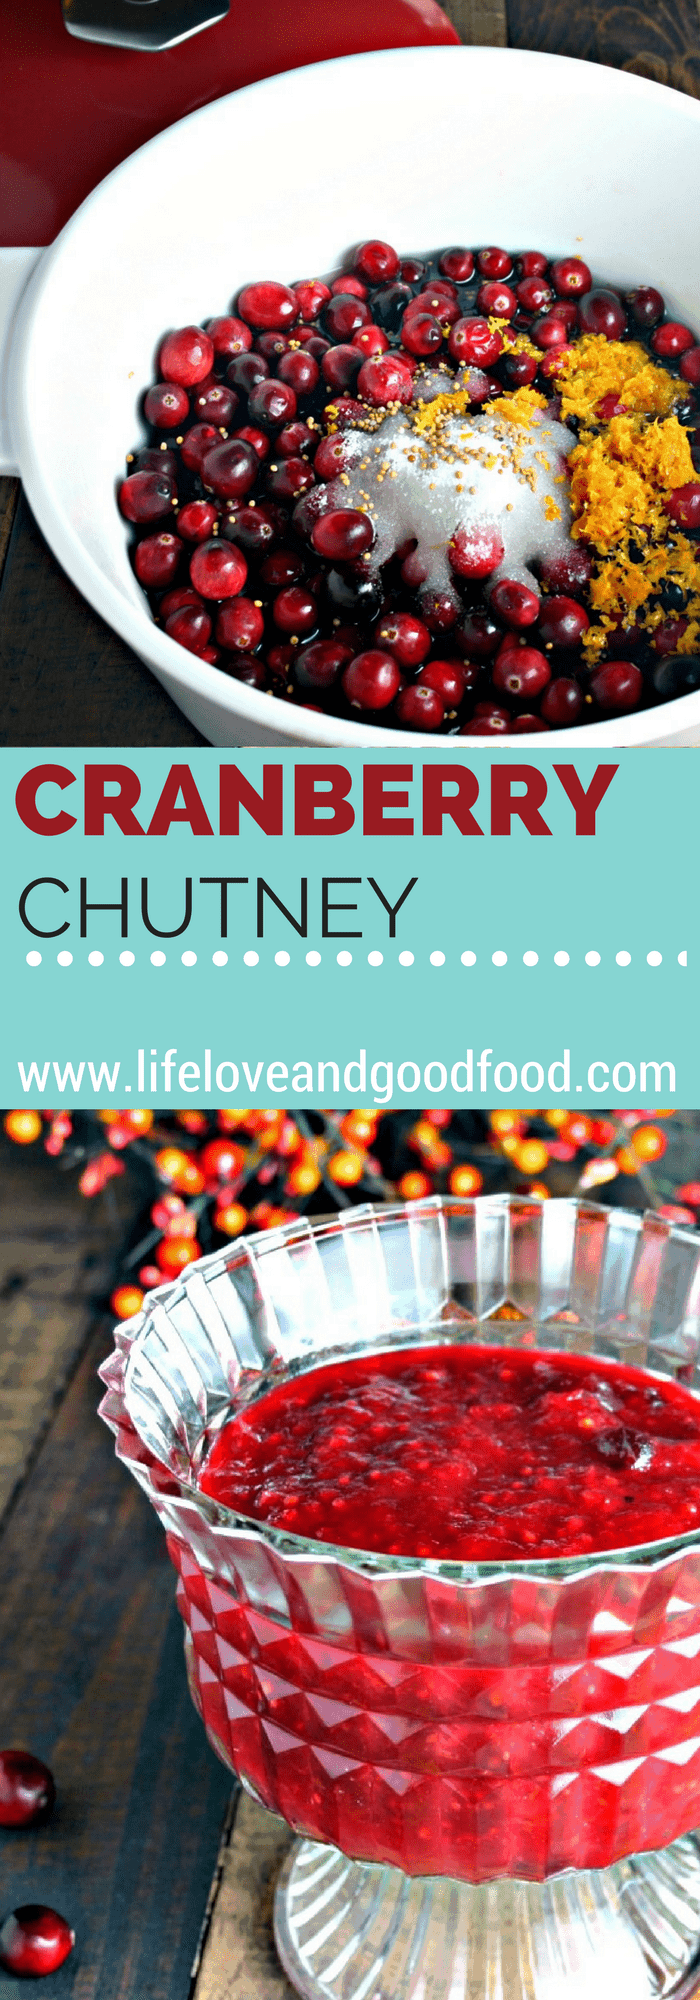 This easy homemade Cranberry Chutney is both tart and sweet at the same time and spiced with just a touch of nutmeg, ginger, and cloves.